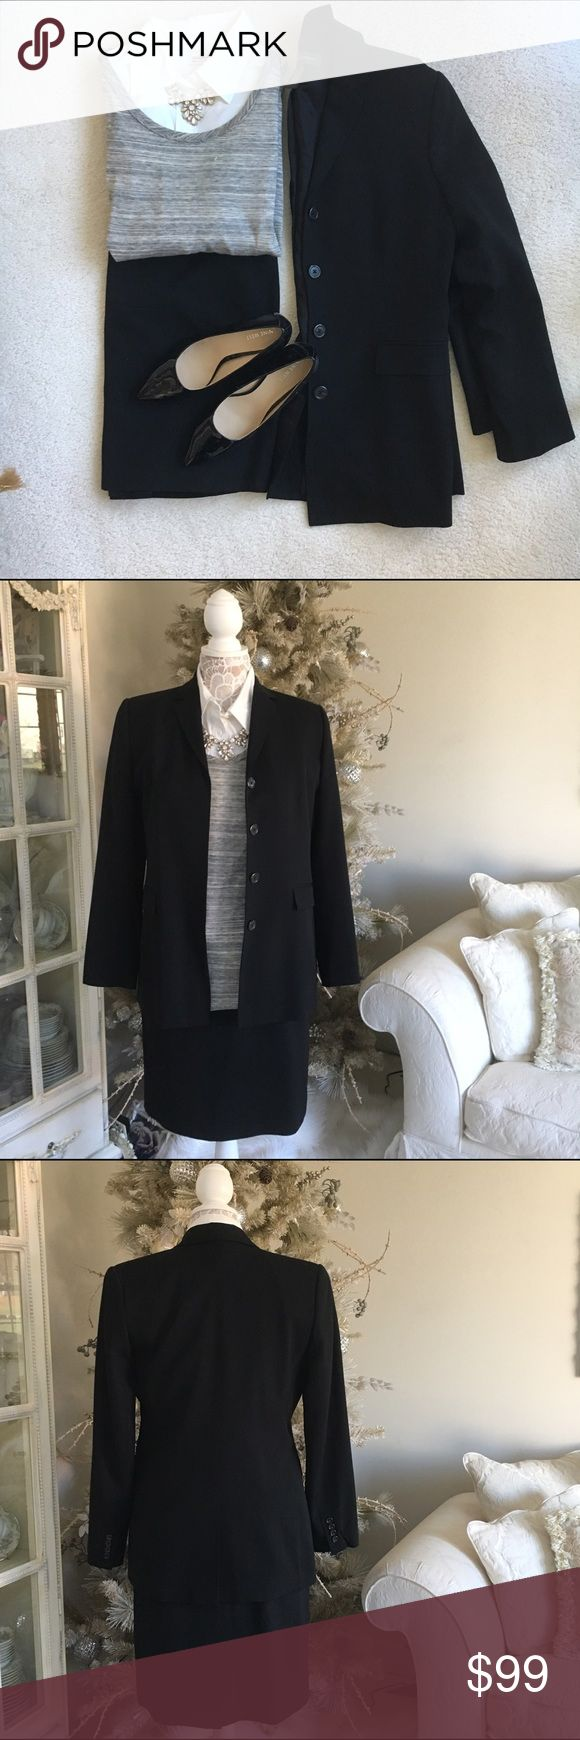 Banana Republic Suit jacket Black suit jacket in 100% wool with 100% rayon lining by Banana Republic. Jacket has two front pockets and hidden buttons. In Great condition and the matching skirt is also for sale in my closet. 🚫trades Banana Republic Jackets & Coats Blazers